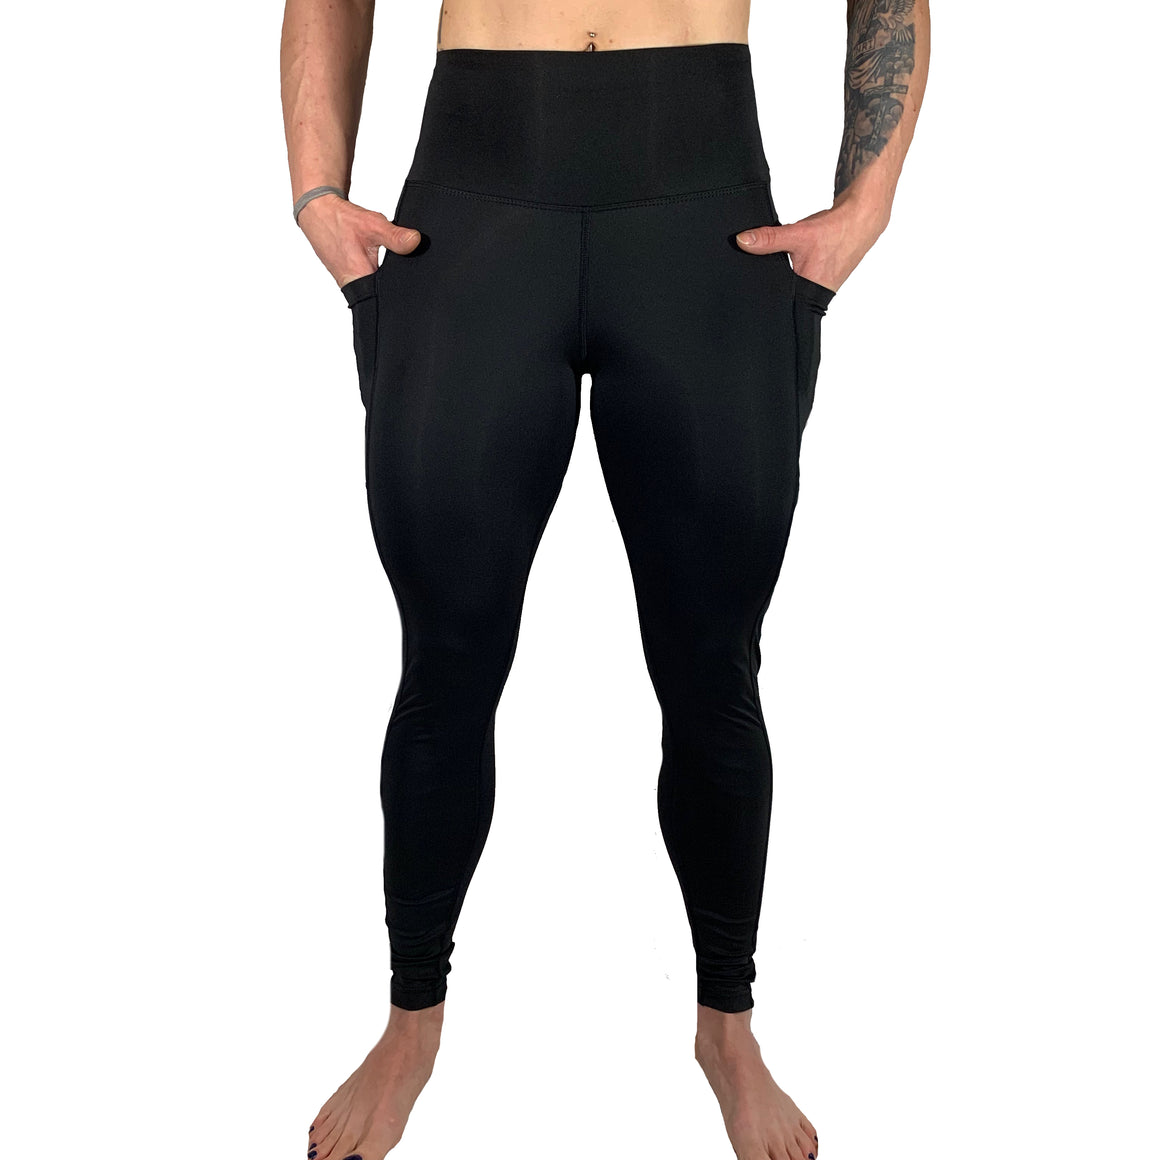 S&B double pocket leggings